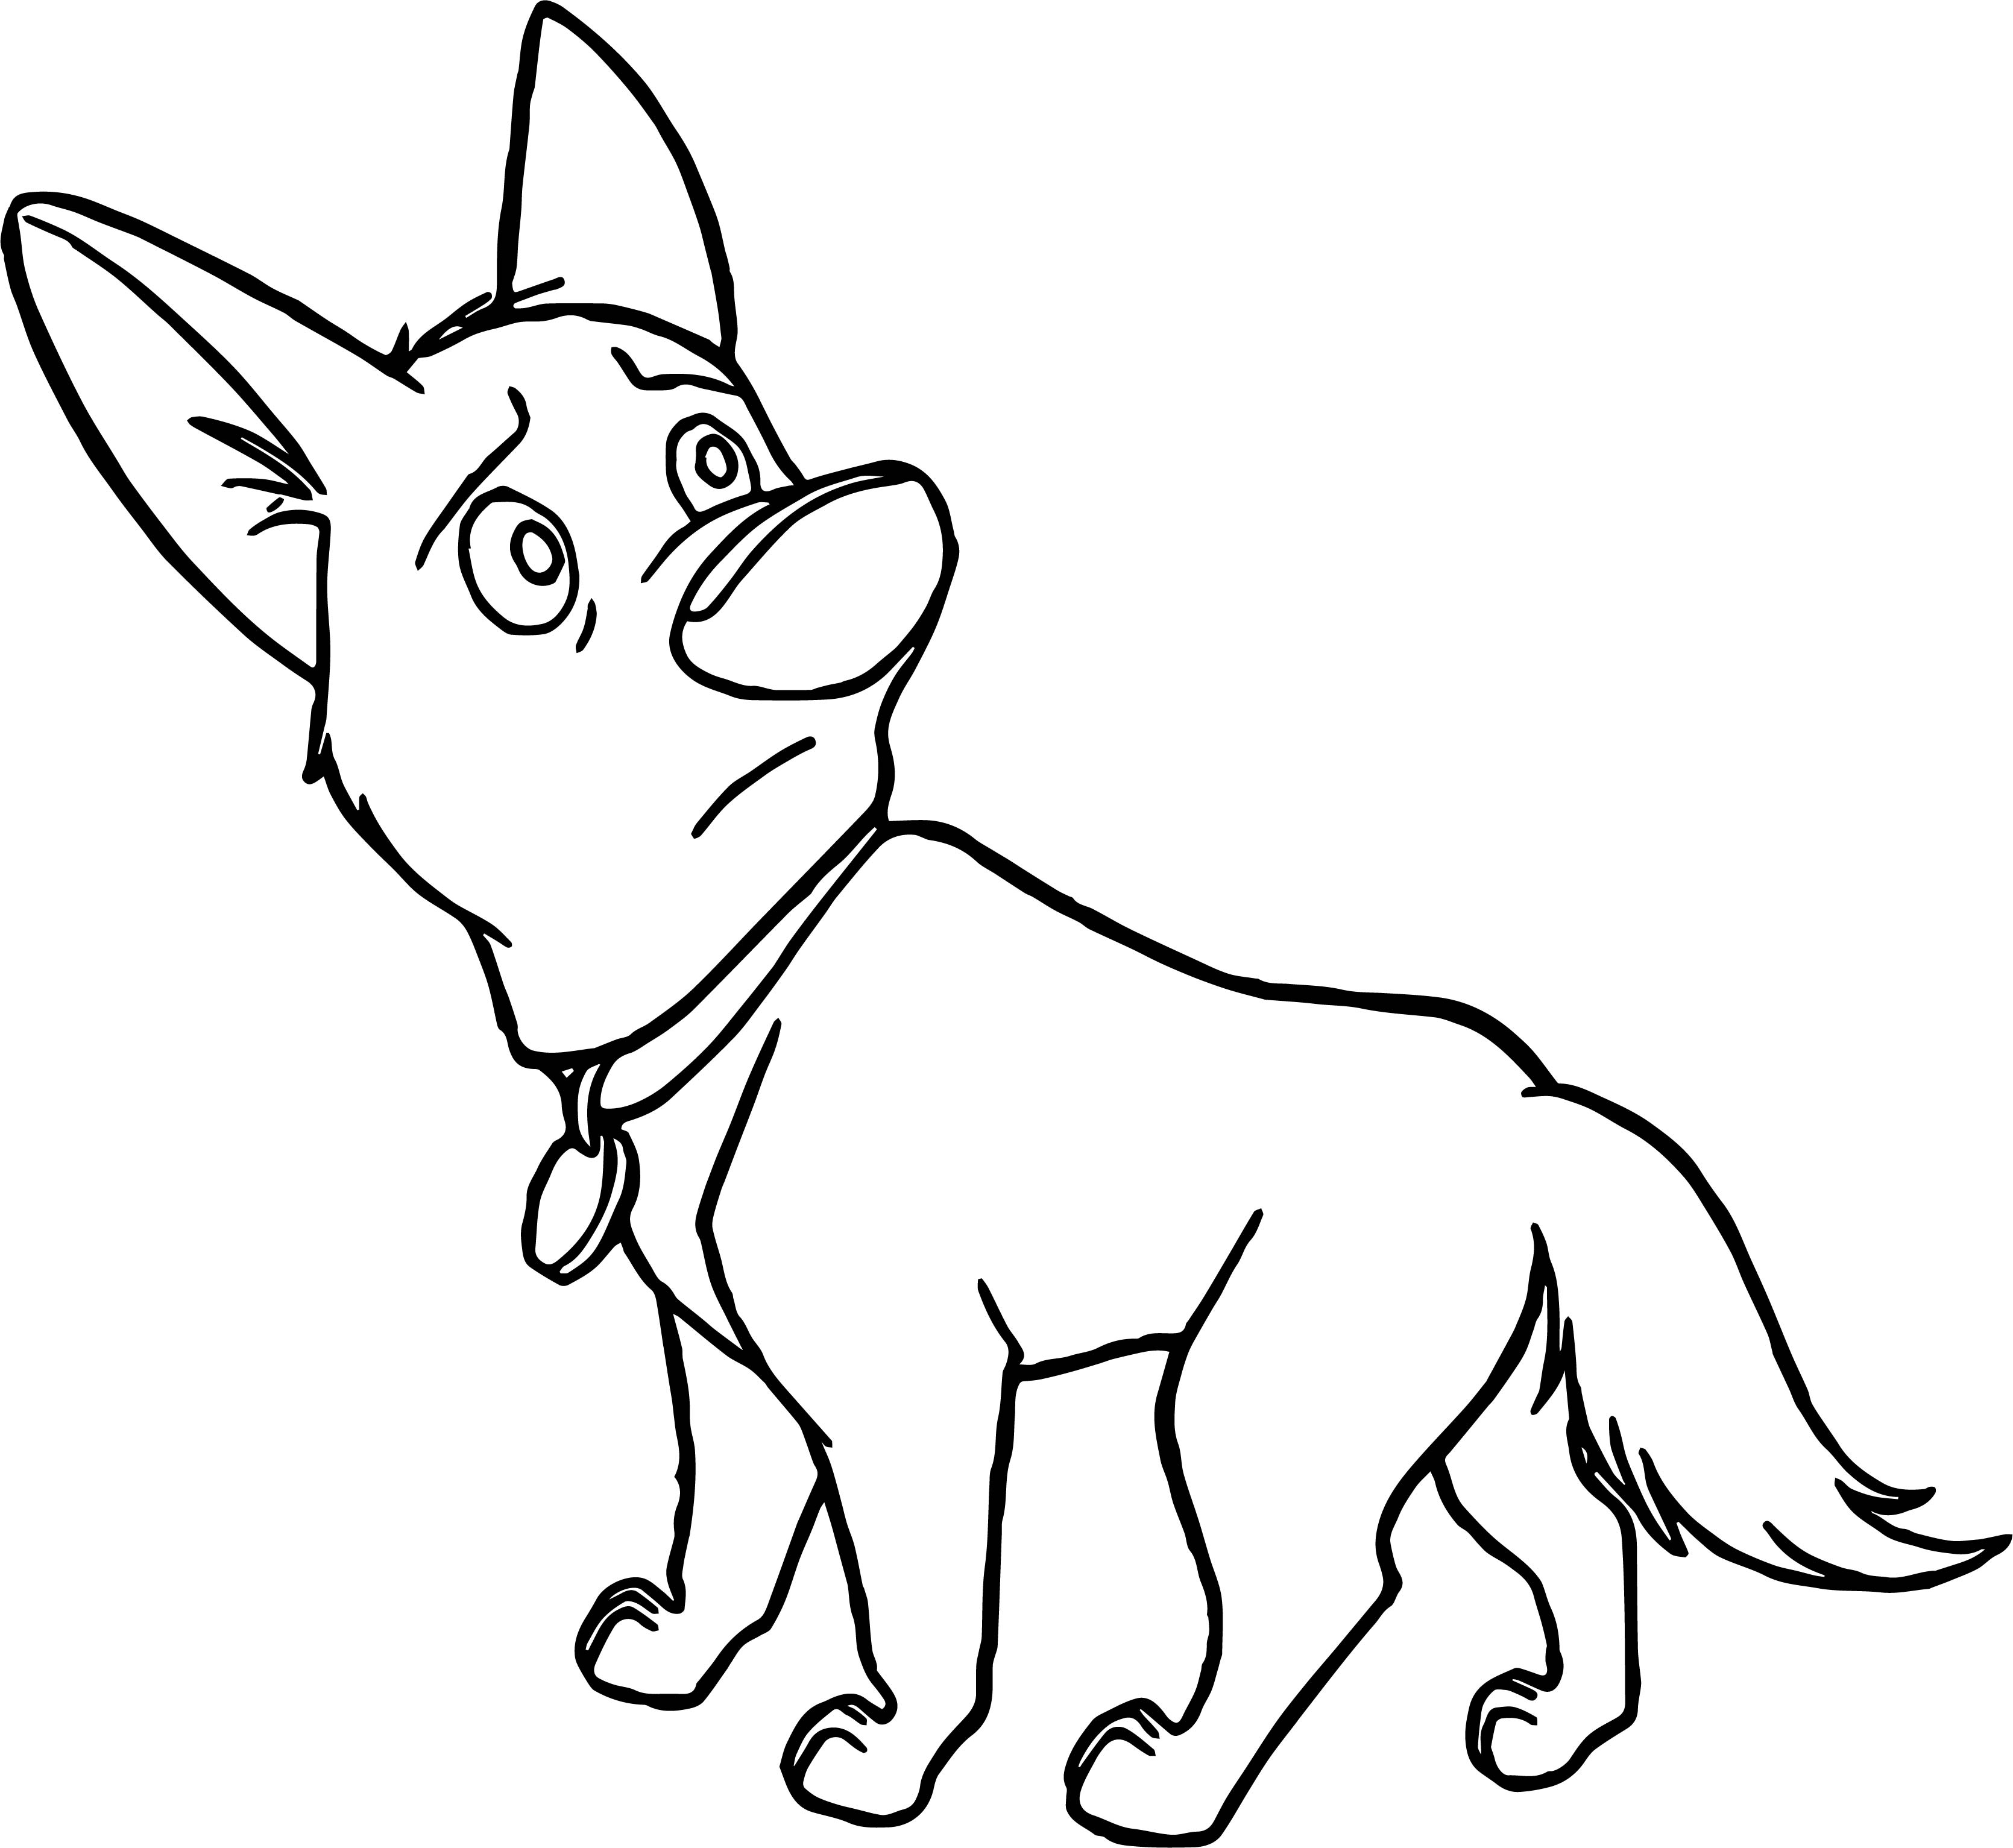 Bolt Dog Sad Coloring Pages Wecoloringpage Com